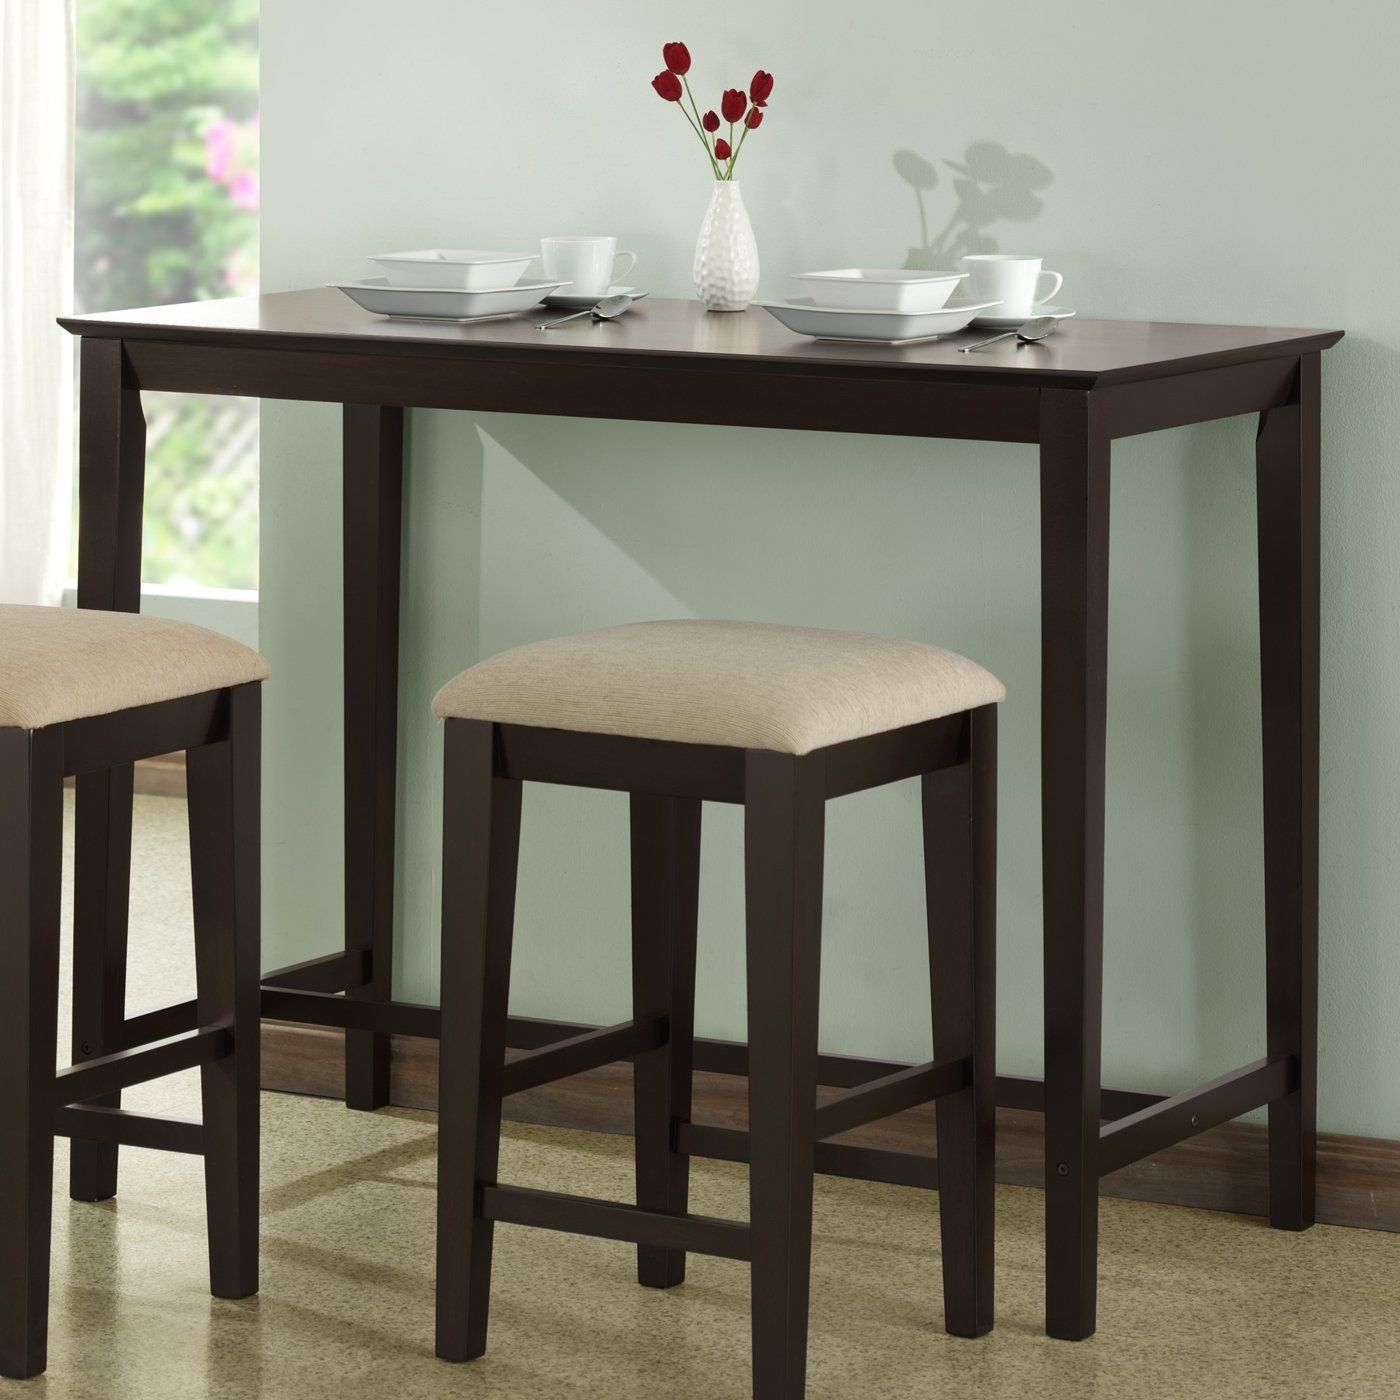 Monarch Specialties I 1359 Counter Height Kitchen Table